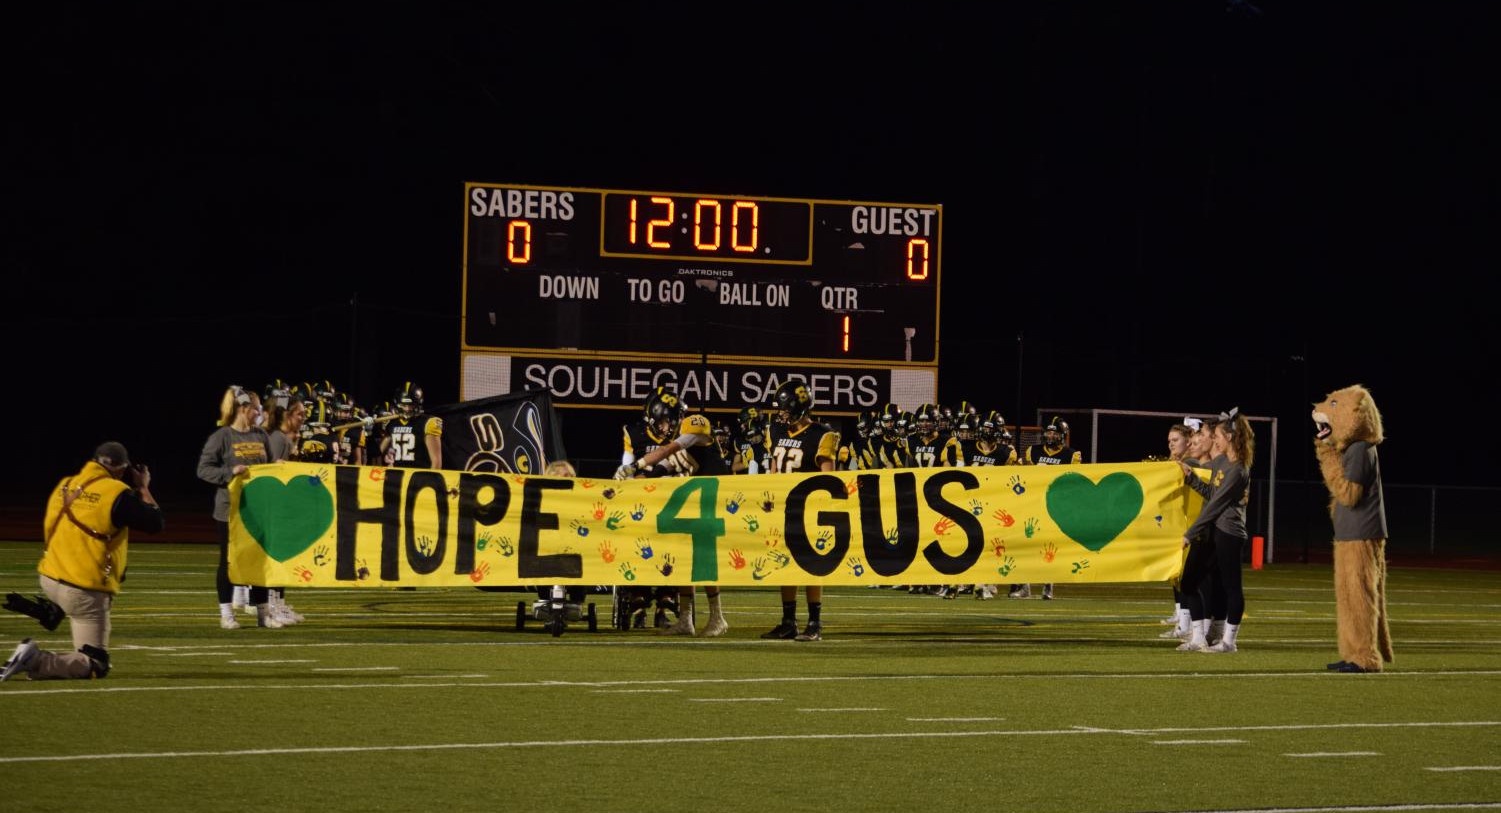 The beginning of the Hope For Gus football game in 2018